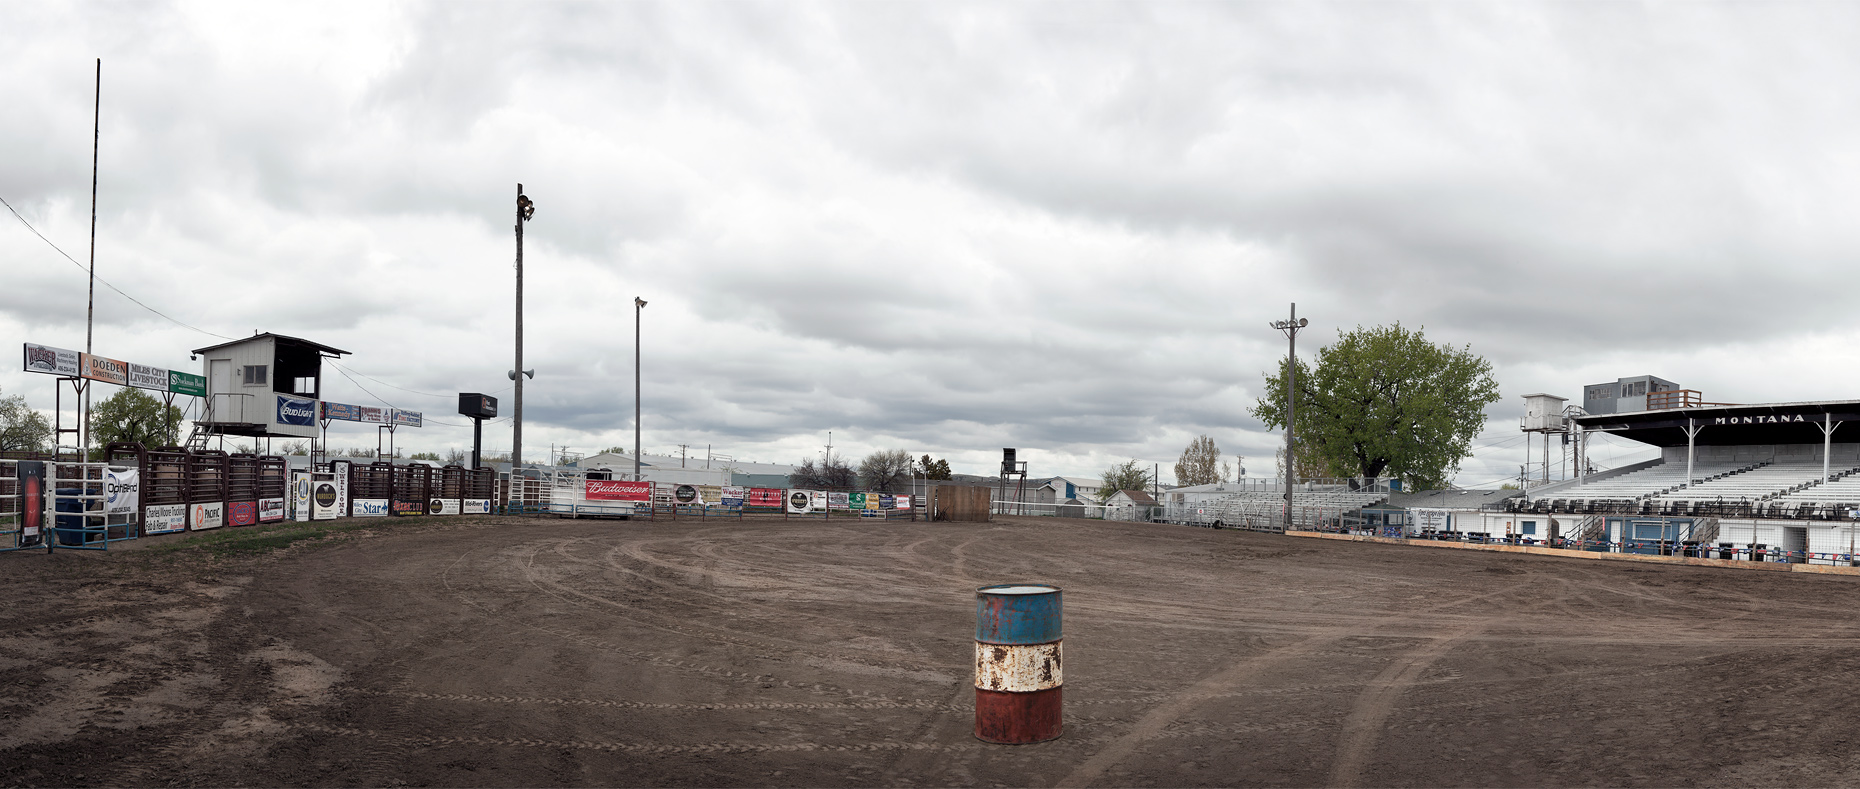 Empty Rodeo Arena in Miles City, Montana